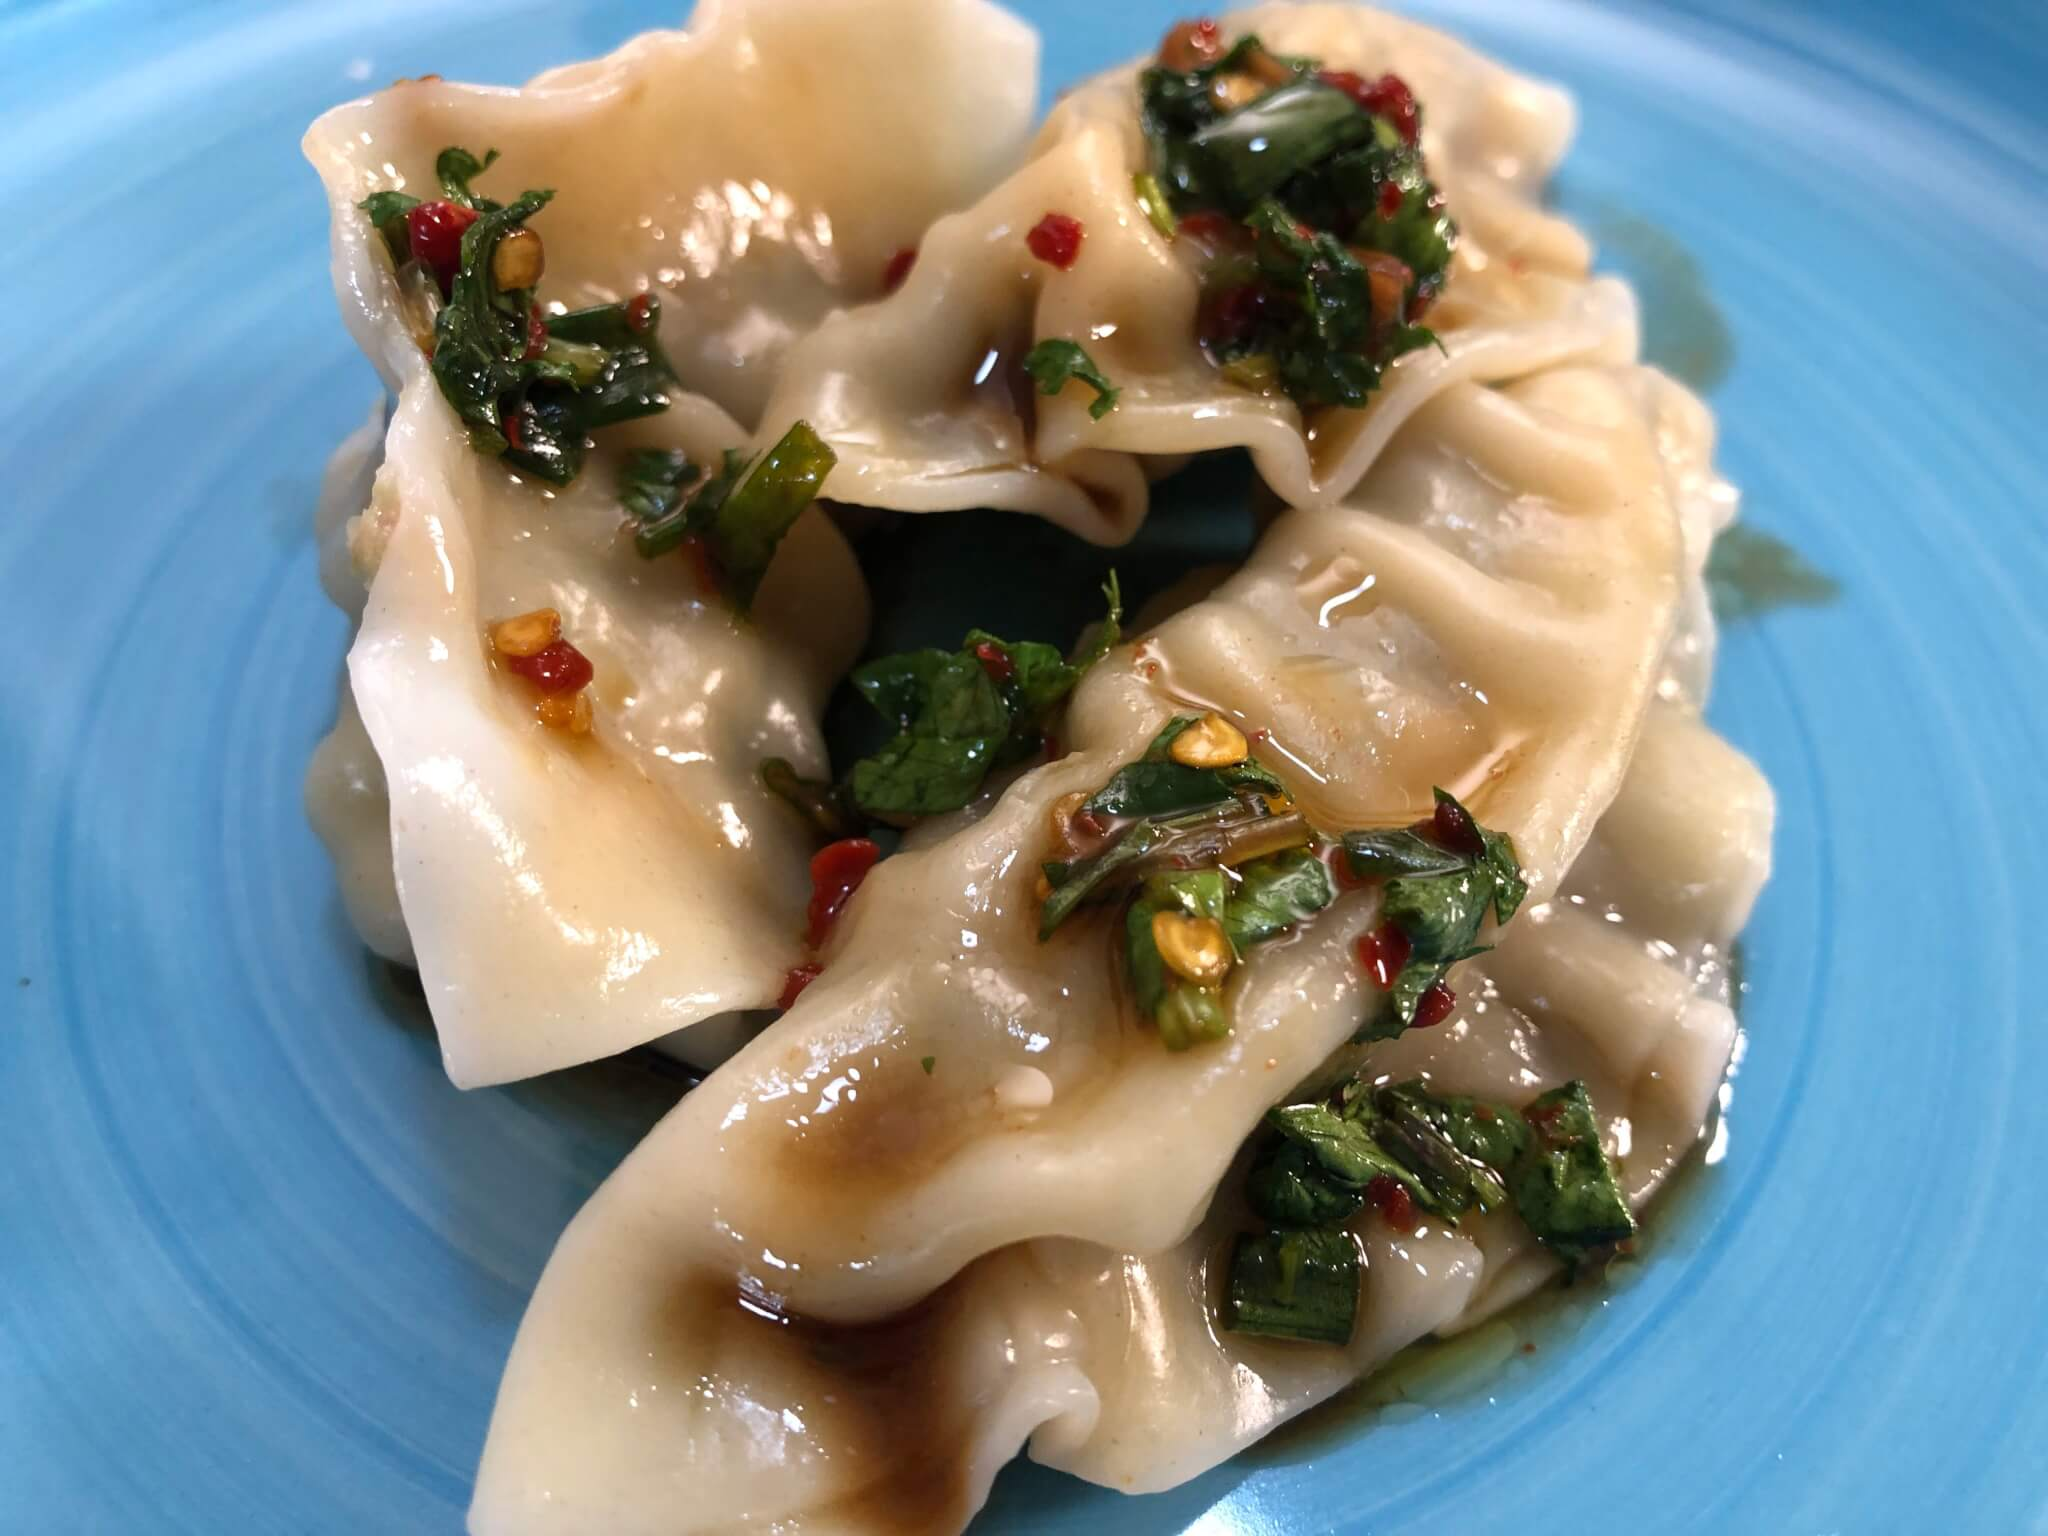 How To Make Authentic Homemade Dumplings (Jiaozi)